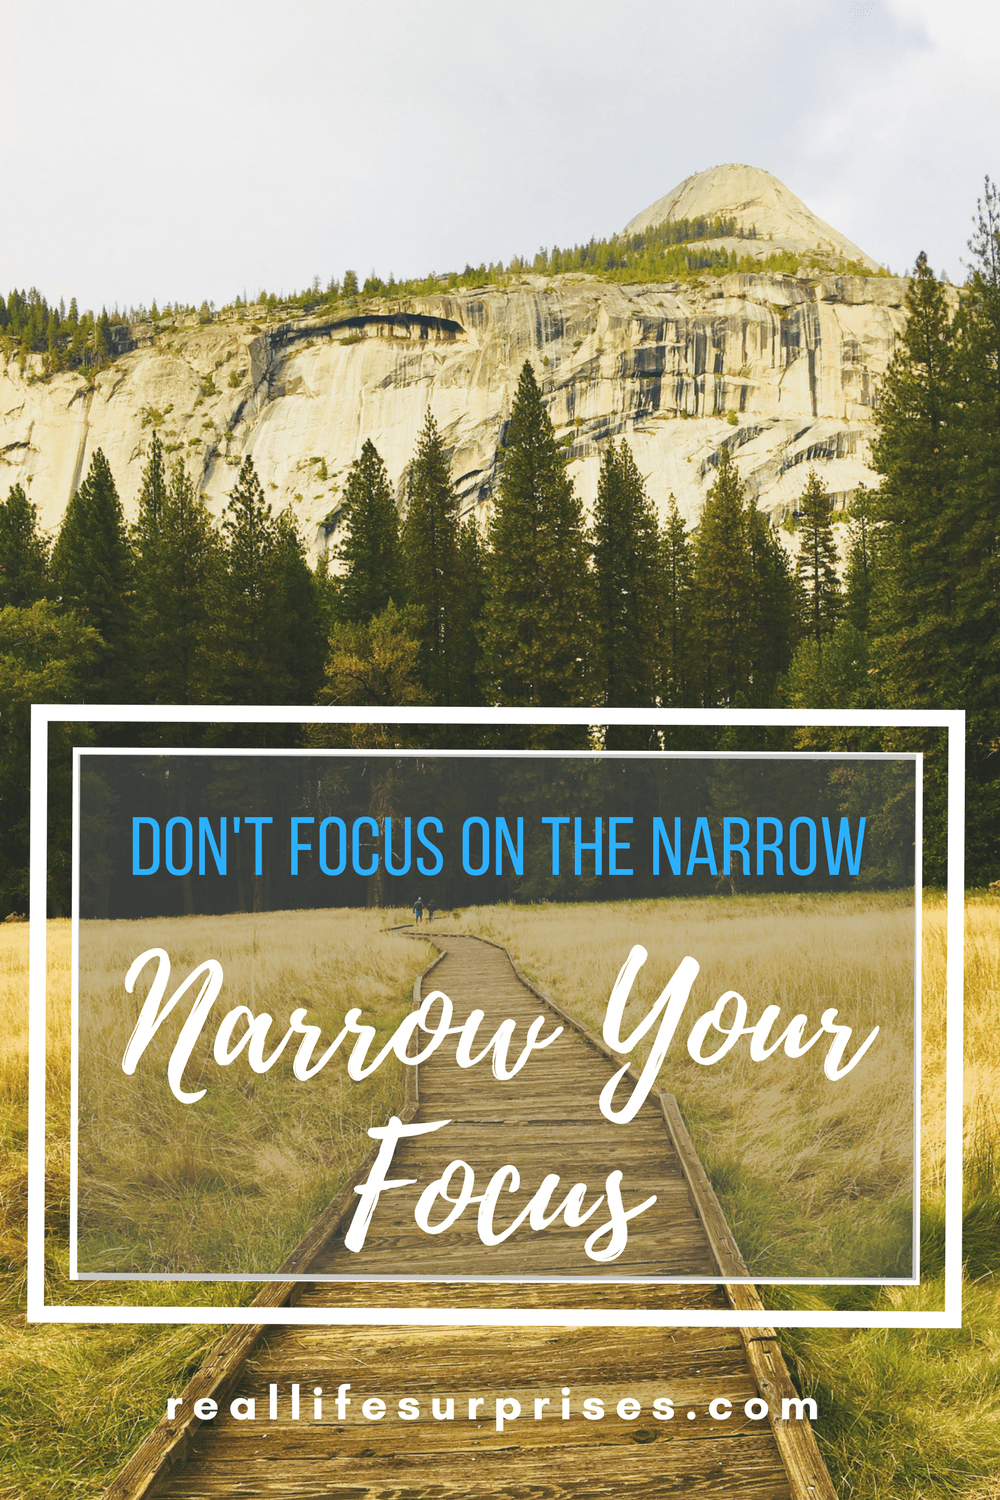 Narrow your focus, New Year